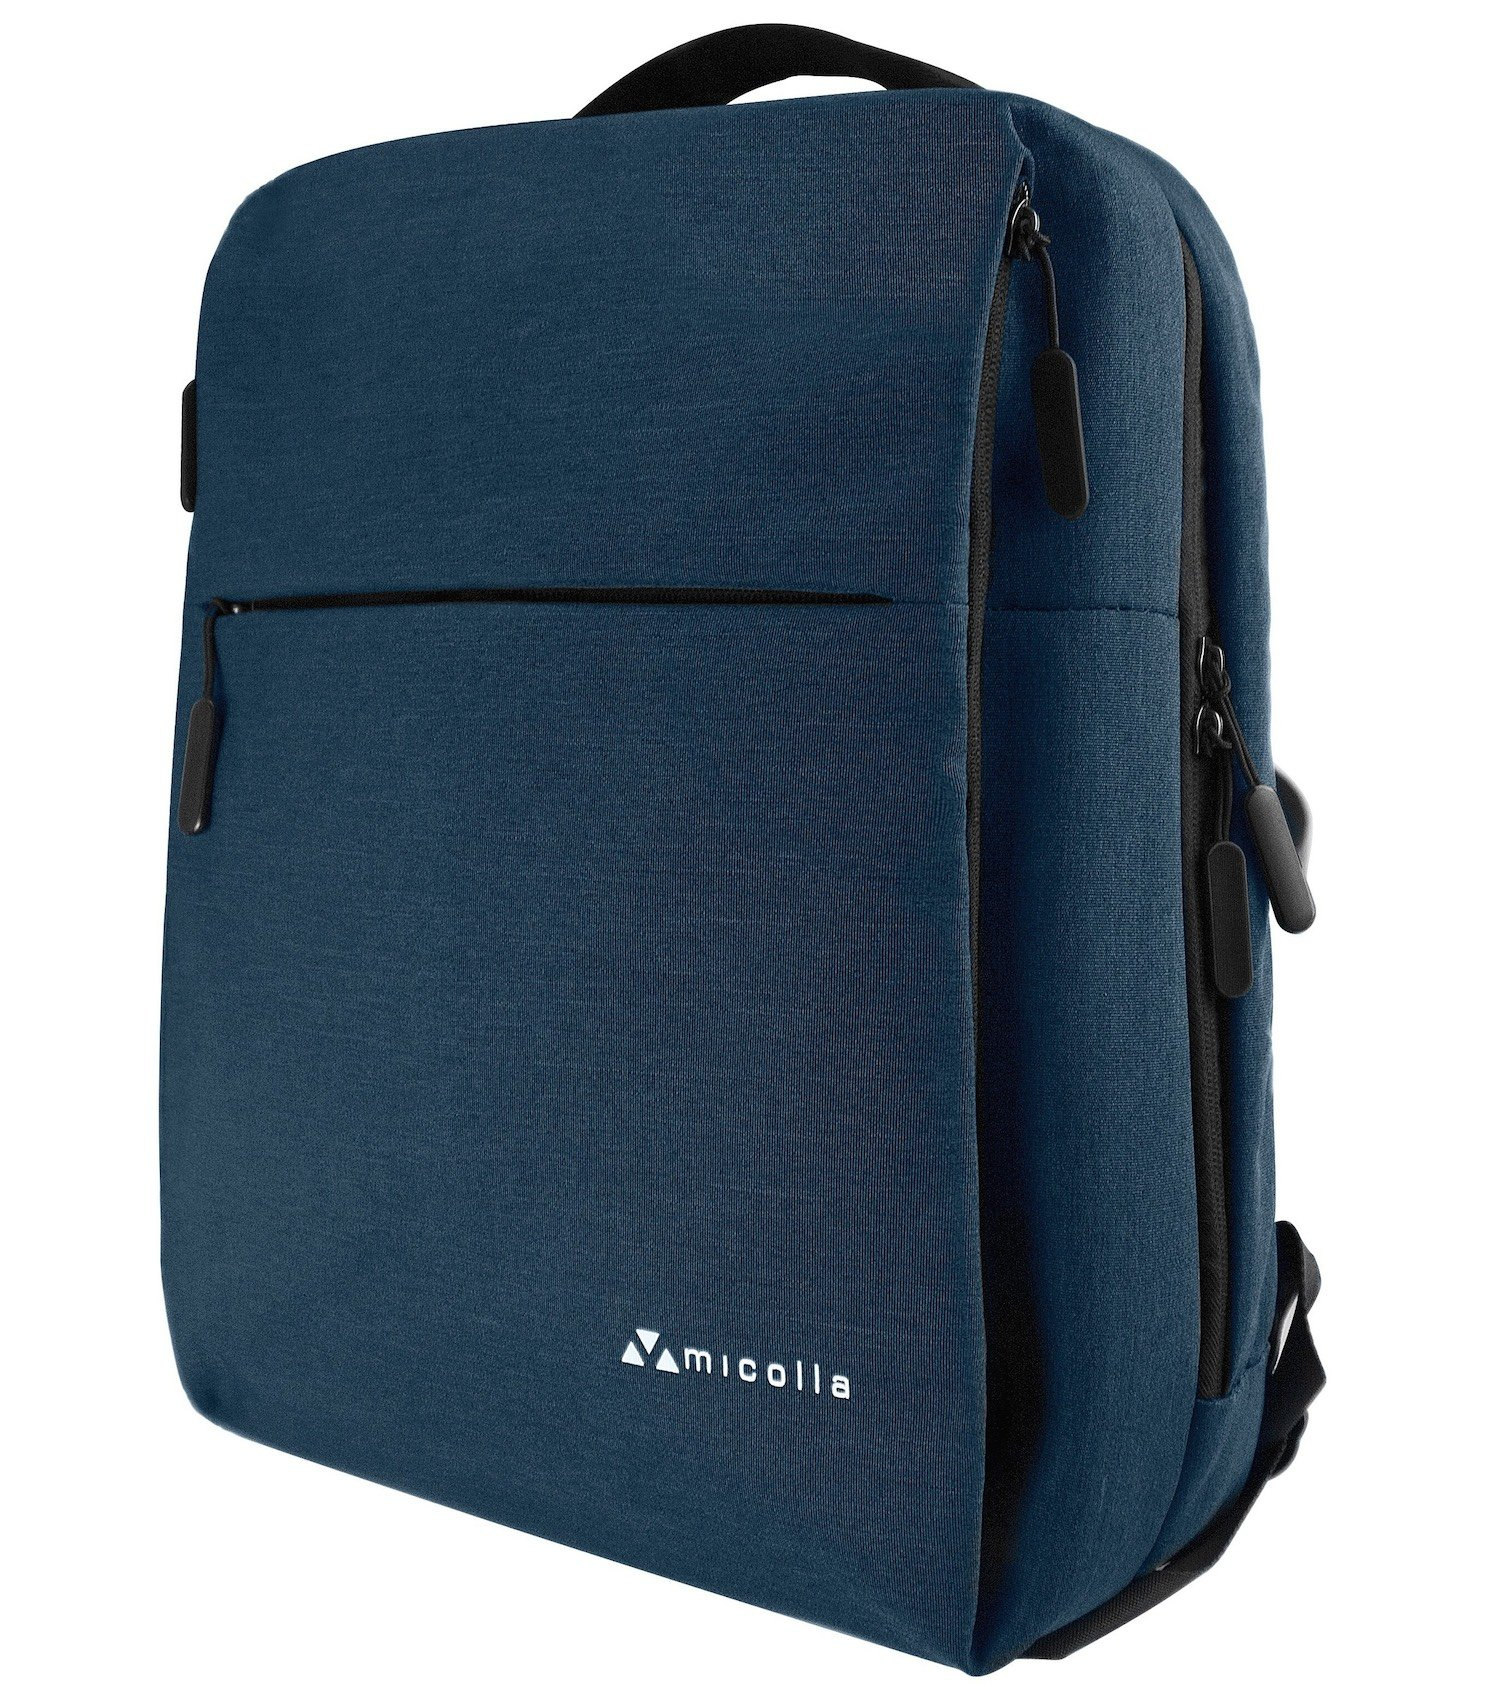 less is more Travel Laptop Backpack For Women & Men Reinforced Top Handle, Durable Zippers, Ergonomic & Padded Pockets, Double Stitching – For Business, College, School Students, Sports, Hiking & More